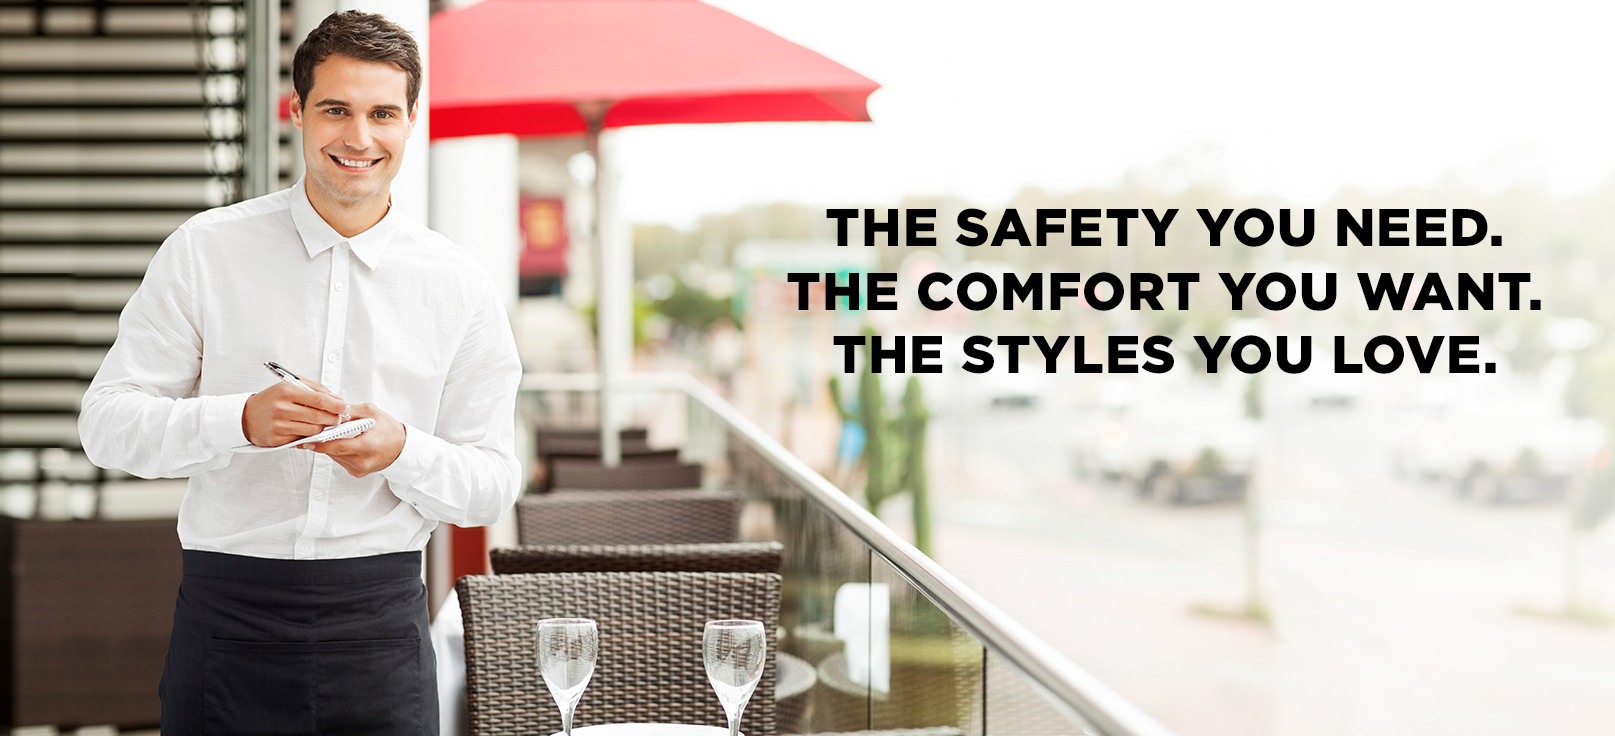 Skechers Direct Program - The safety you need, the comfort you want, the styles you love.